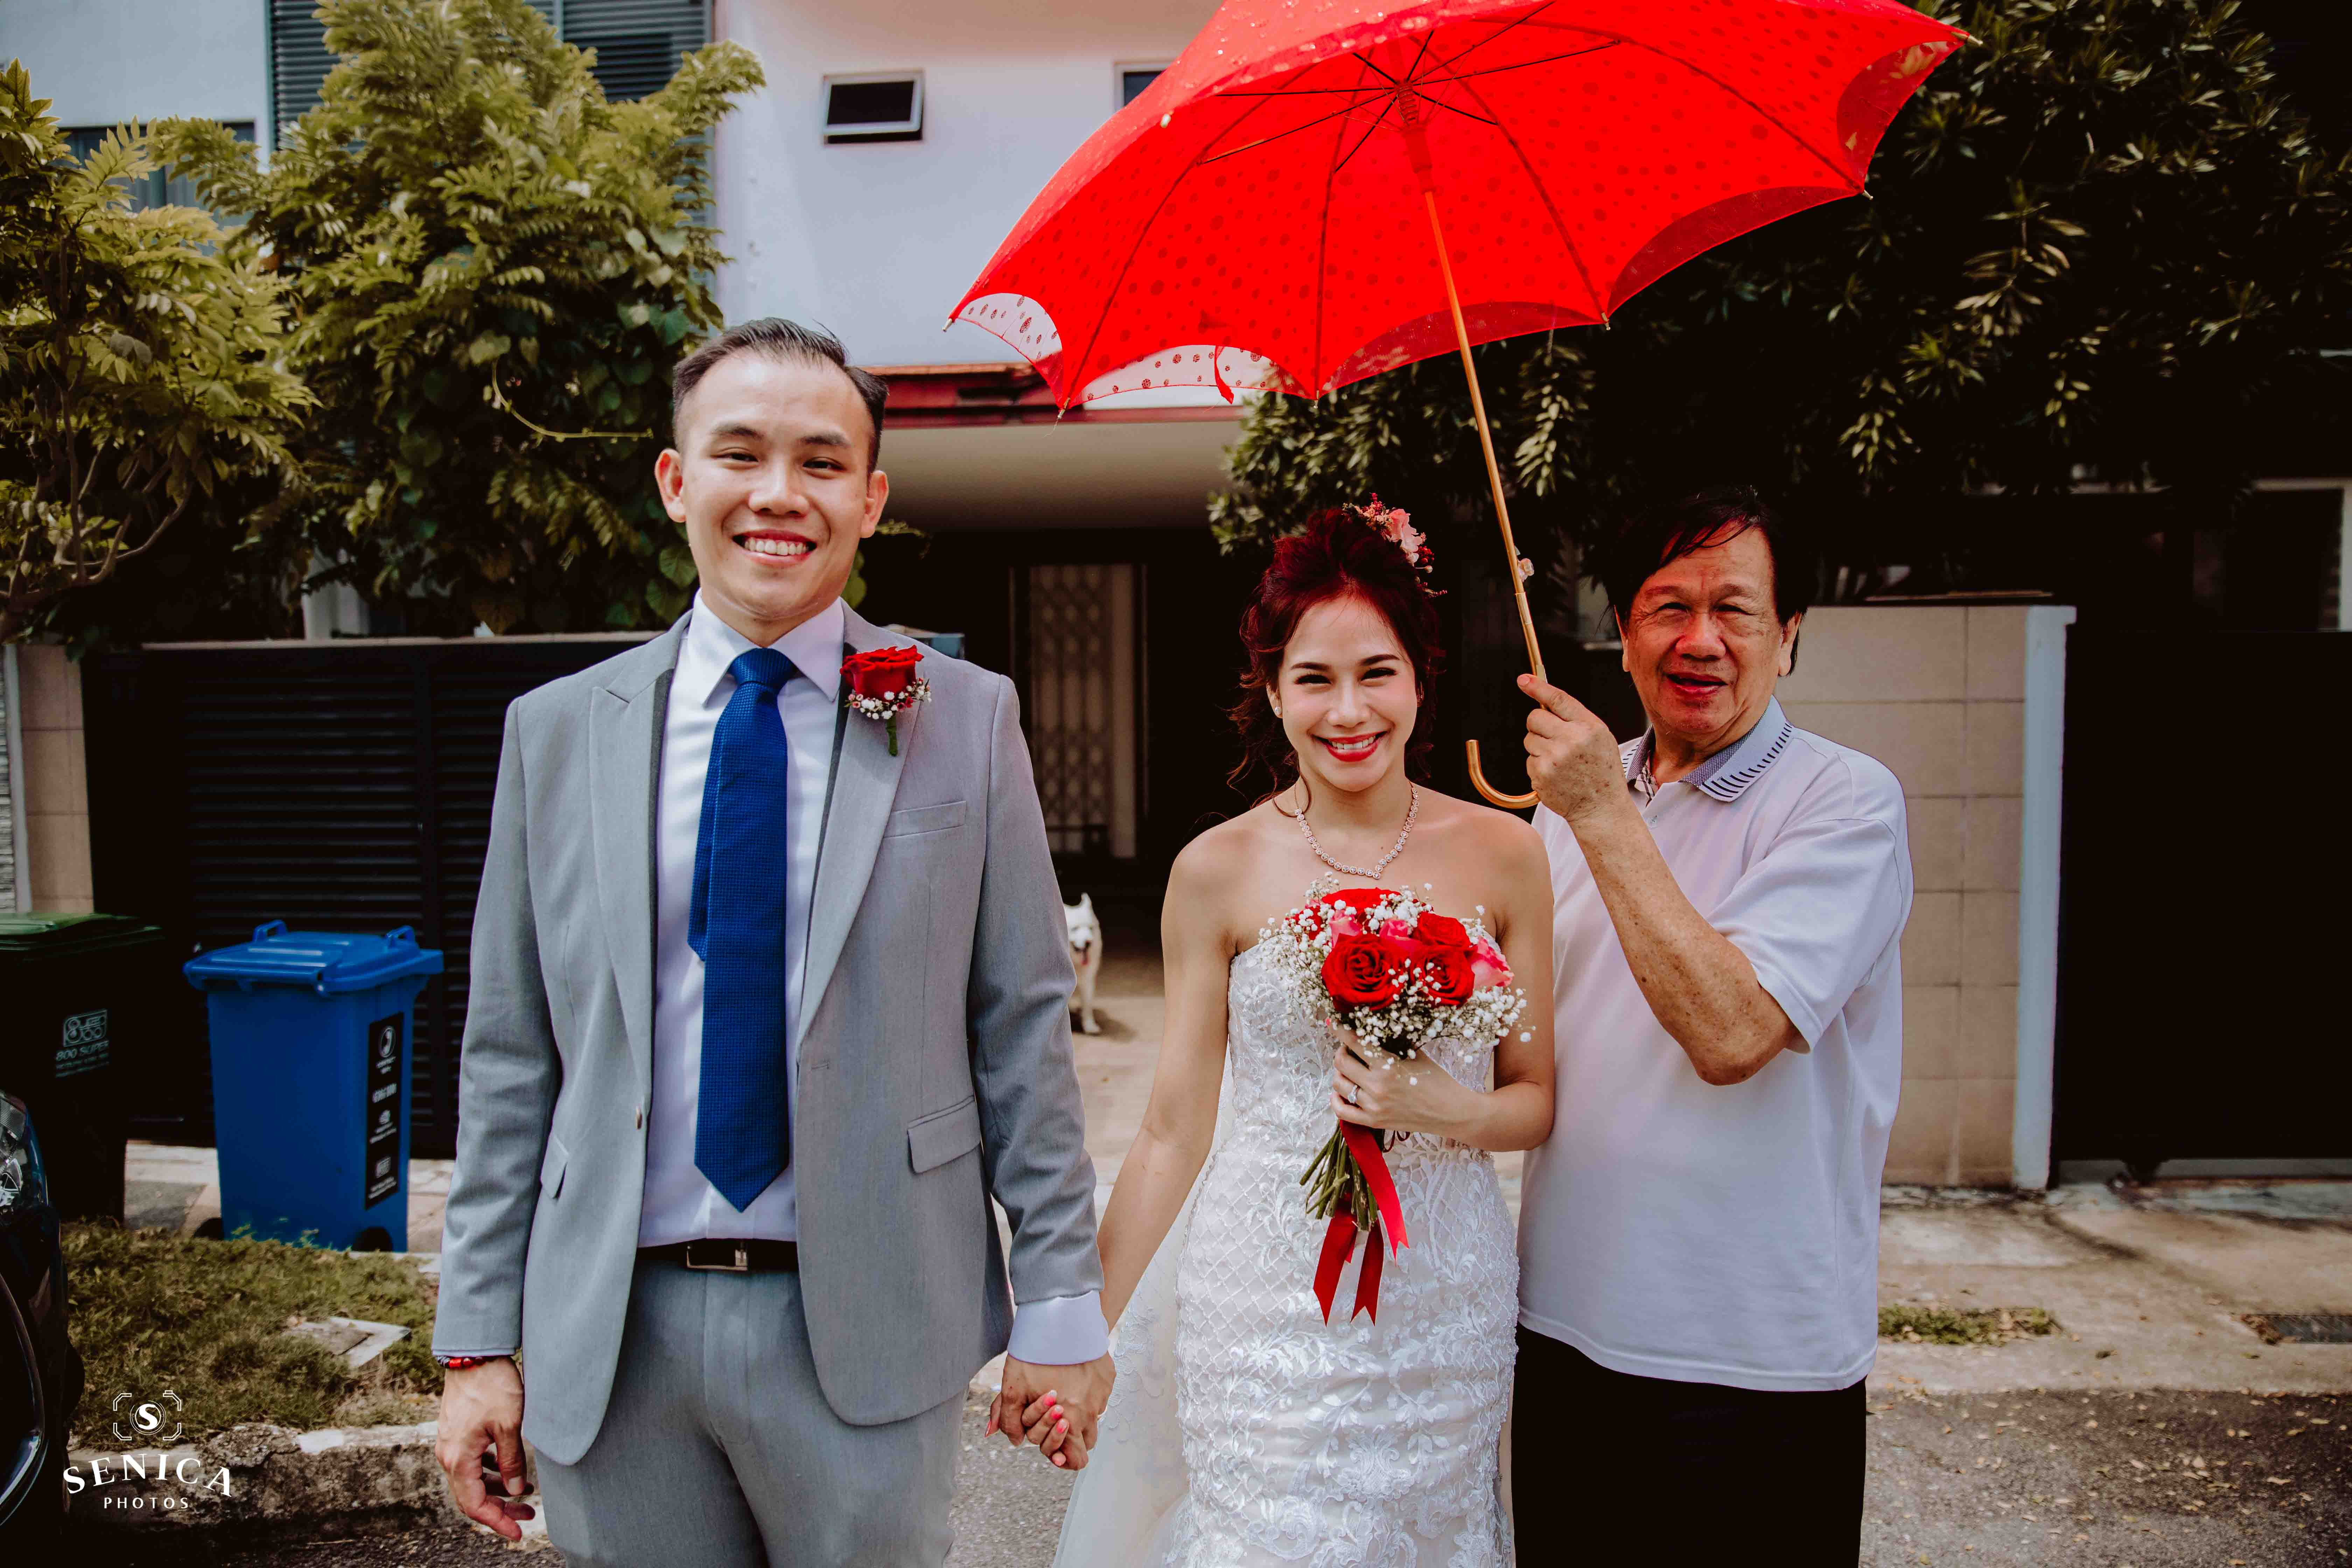 Bride's father holding umbrella over her while groom leads her to the bridal car